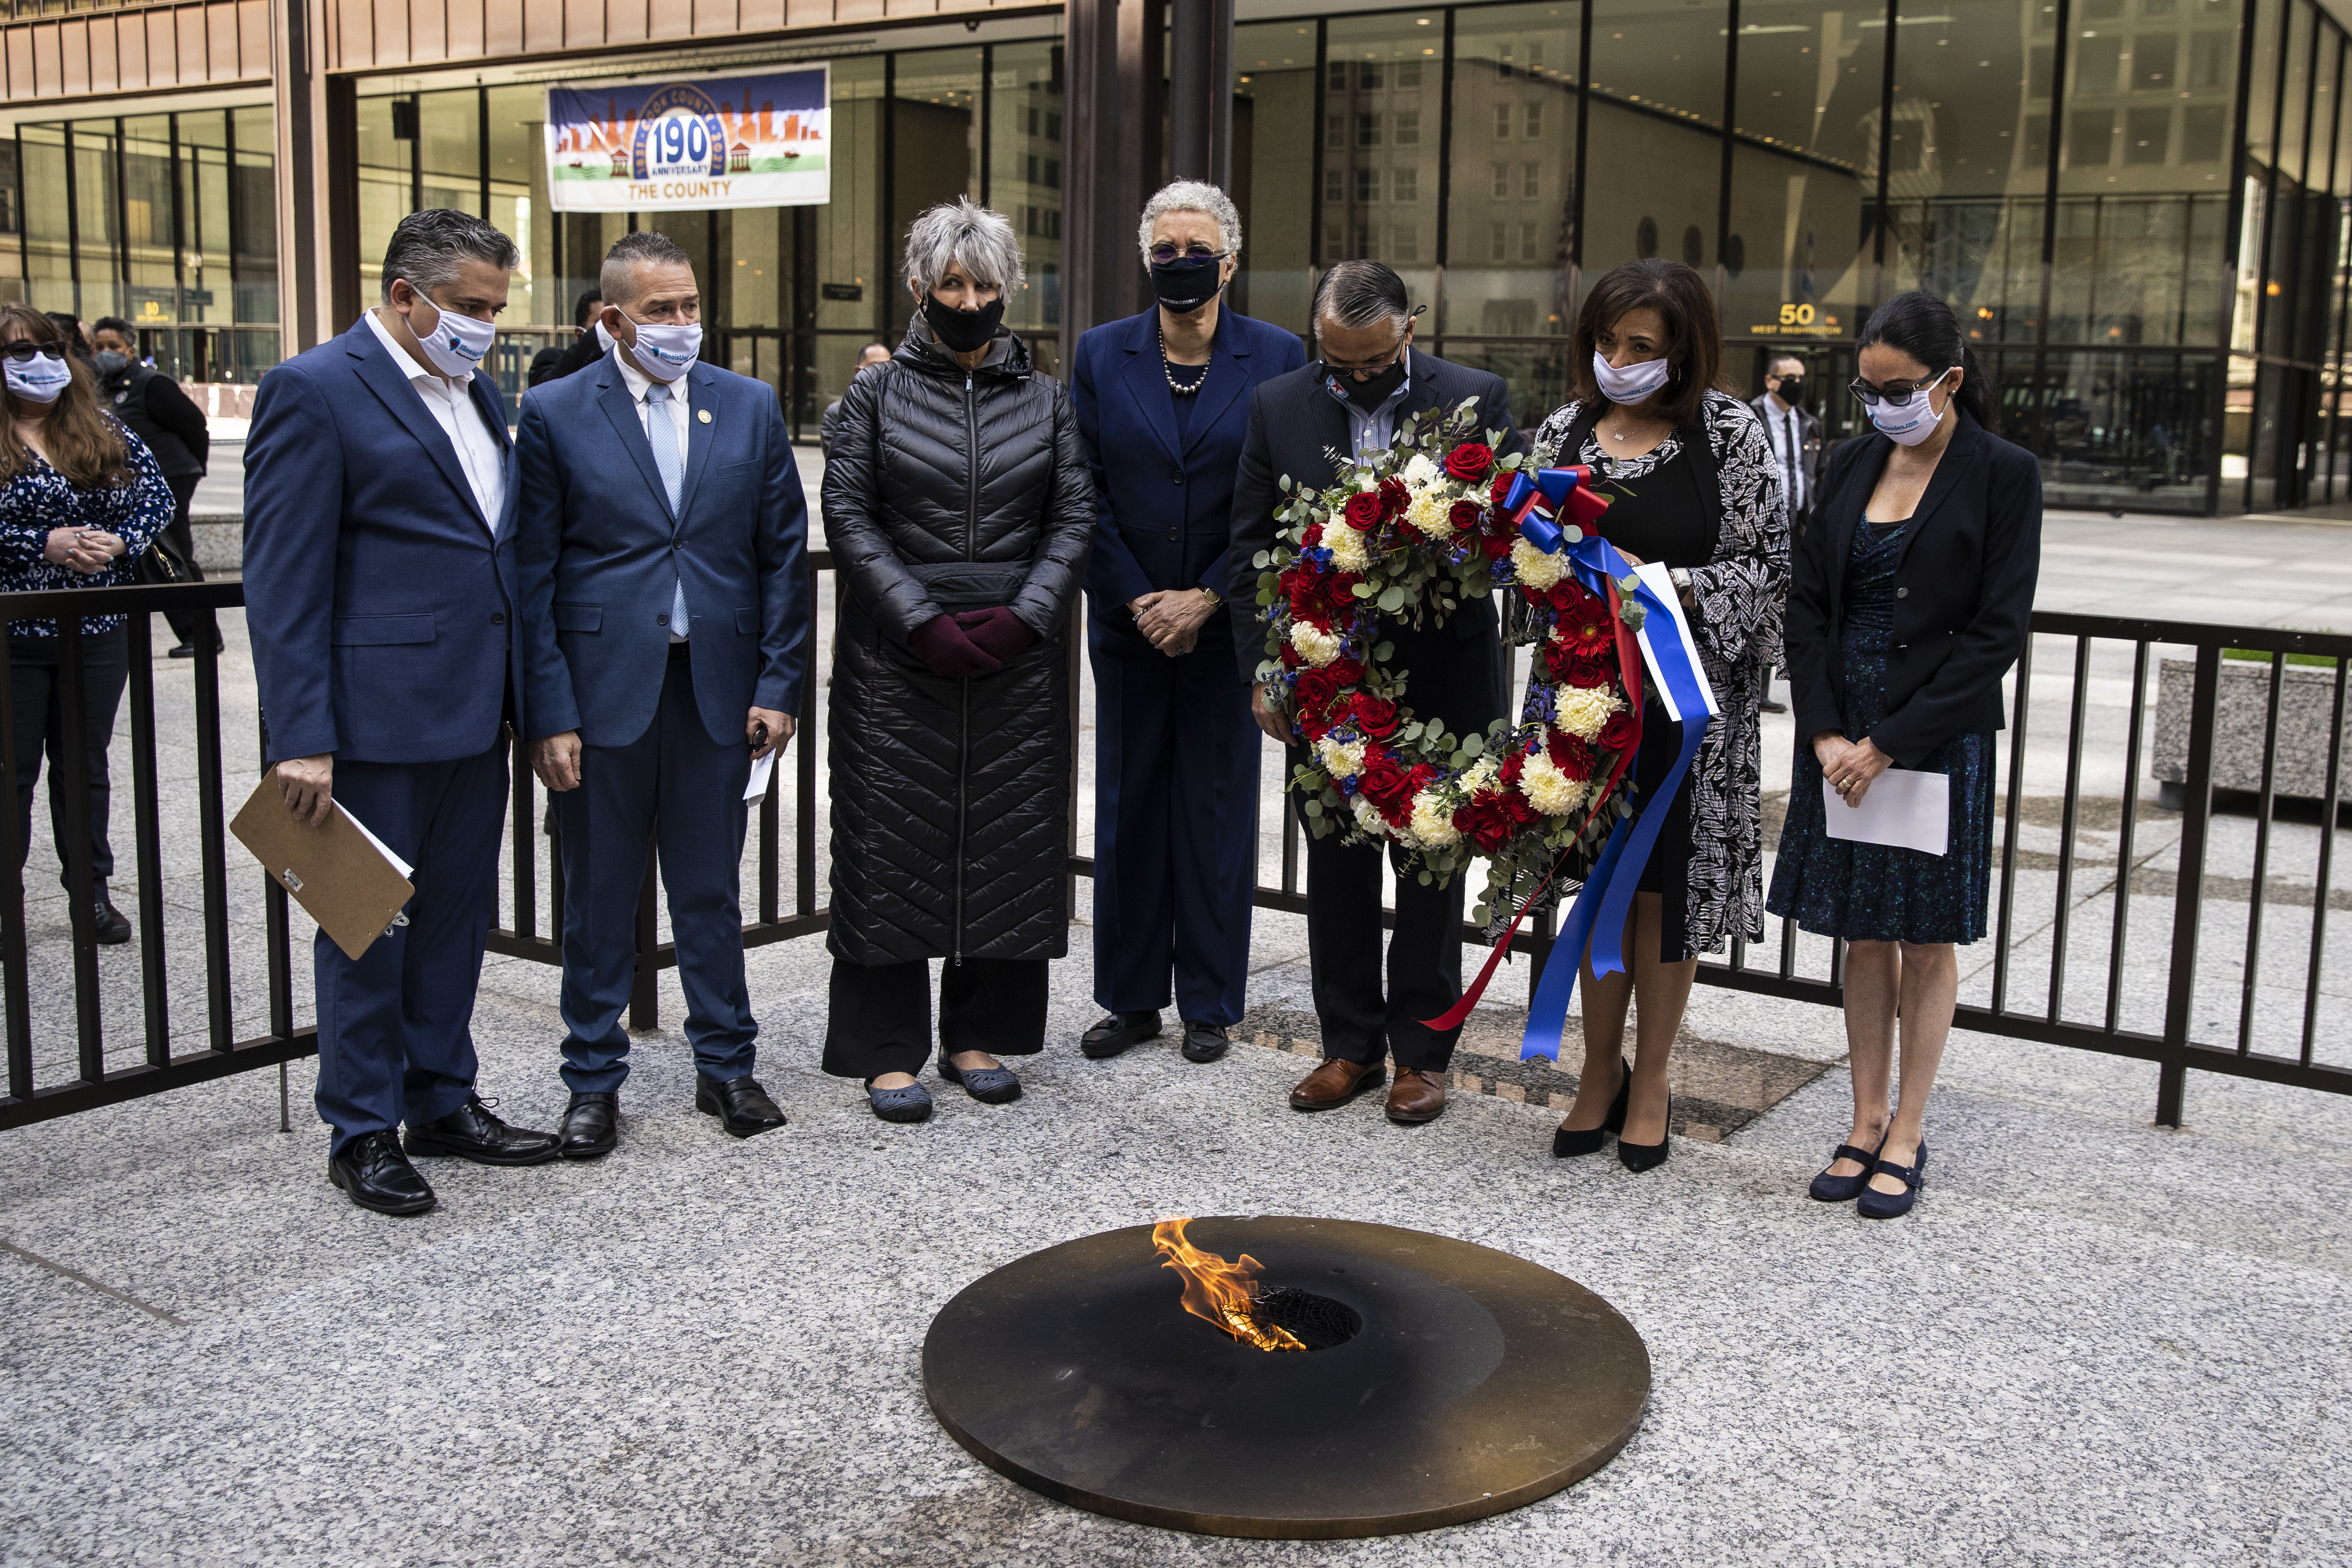 (From left) Xavier Nogueras and Cesar Rolon, of Illinois Unidos, Cook County Treasurer Maria Pappas, Cook County Board President Toni Preckwinkle, Ald. Gilbert Villegas (36th), Cook County Clerk of the Circuit Court Iris Martinez and Dr. Marina Del Rios, from University of Illinois Hospital & Health Sciences System, lay a wreath near the Eternal Flame Memorial at Daley Plaza in honor of essential workers and the Brown and Black communities hit hard by COVID-19, Monday, April 12, 2021.